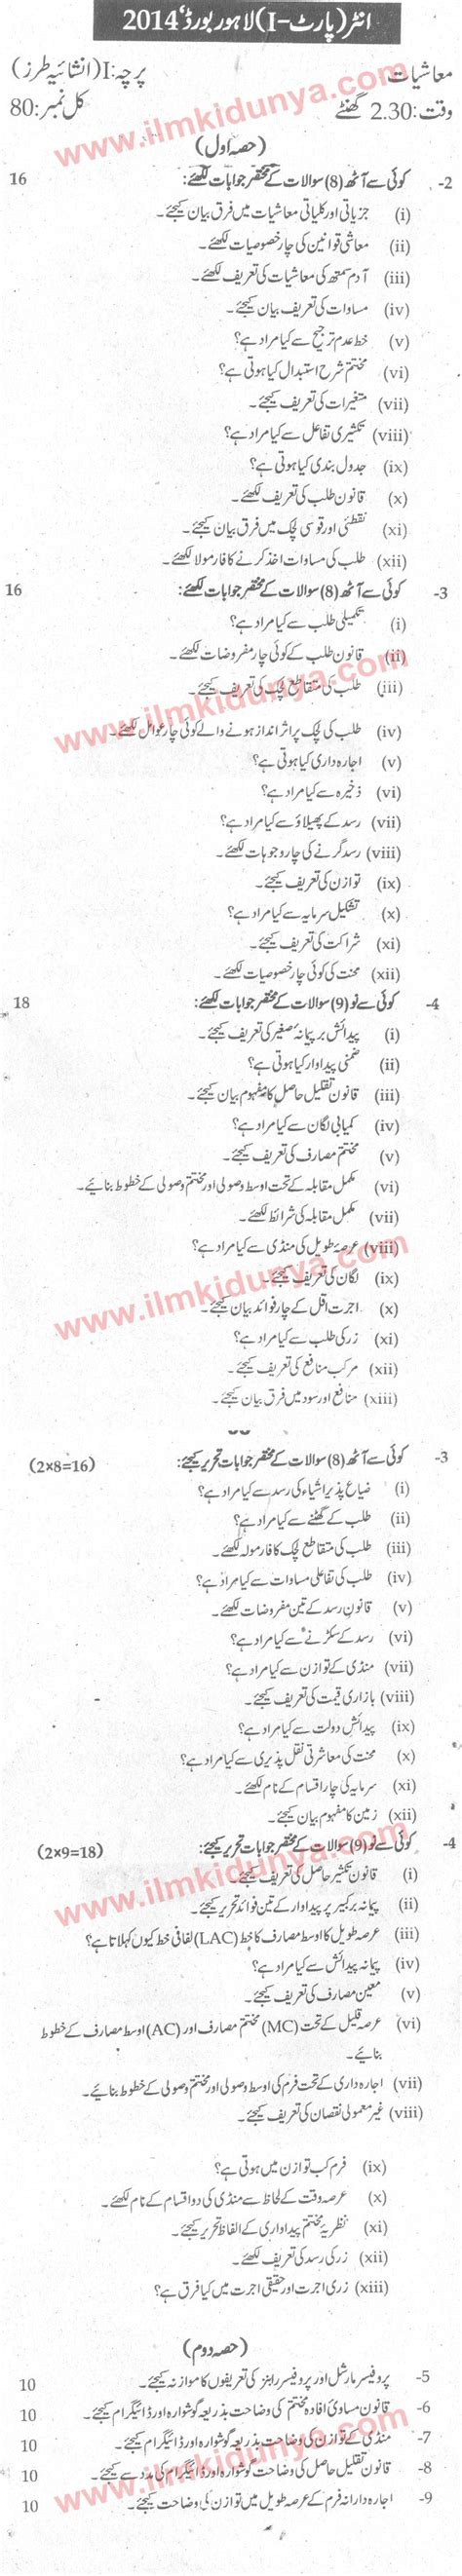 Letter Pattern Lahore Board paper pattern lahore board inter part 1 economics subjective